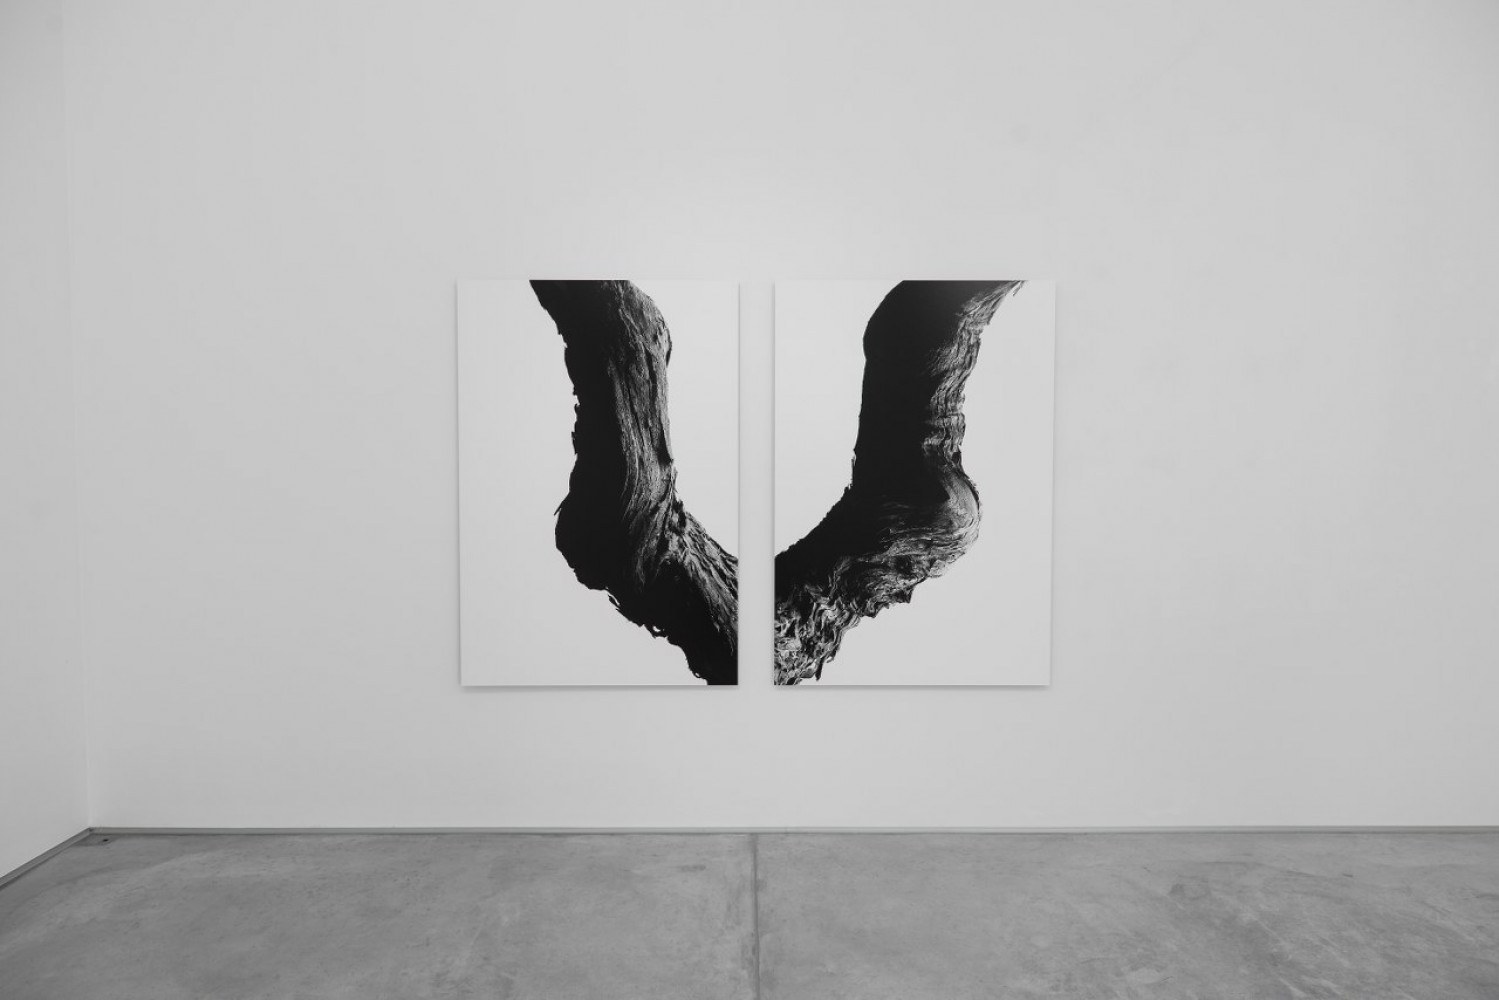 Marco D'Anna, 'OLTRE/N.10 (diptych)', 2016